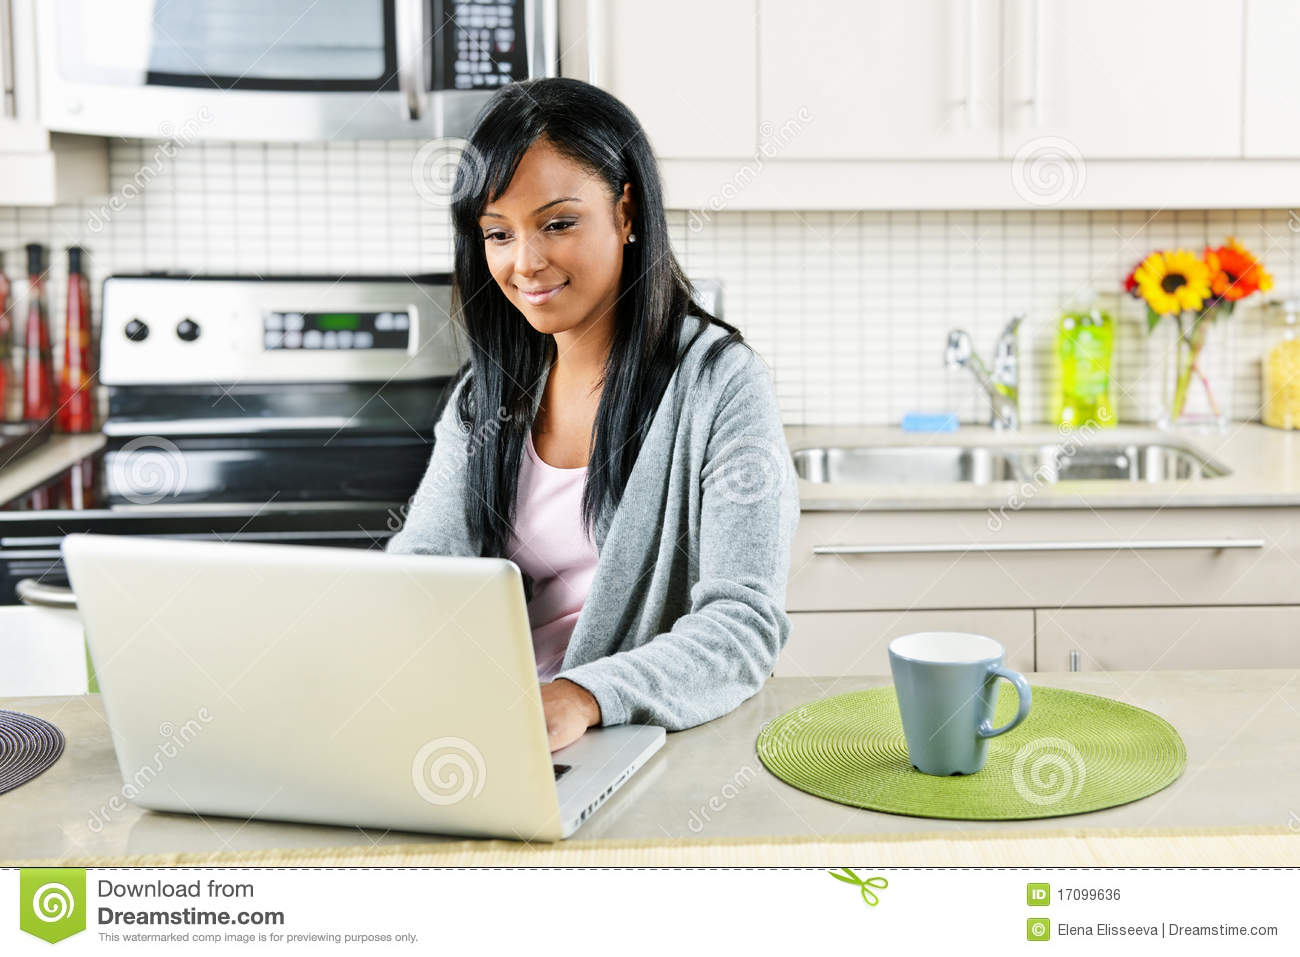 Woman Using Computer In Kitchen Royalty Free Stock Image